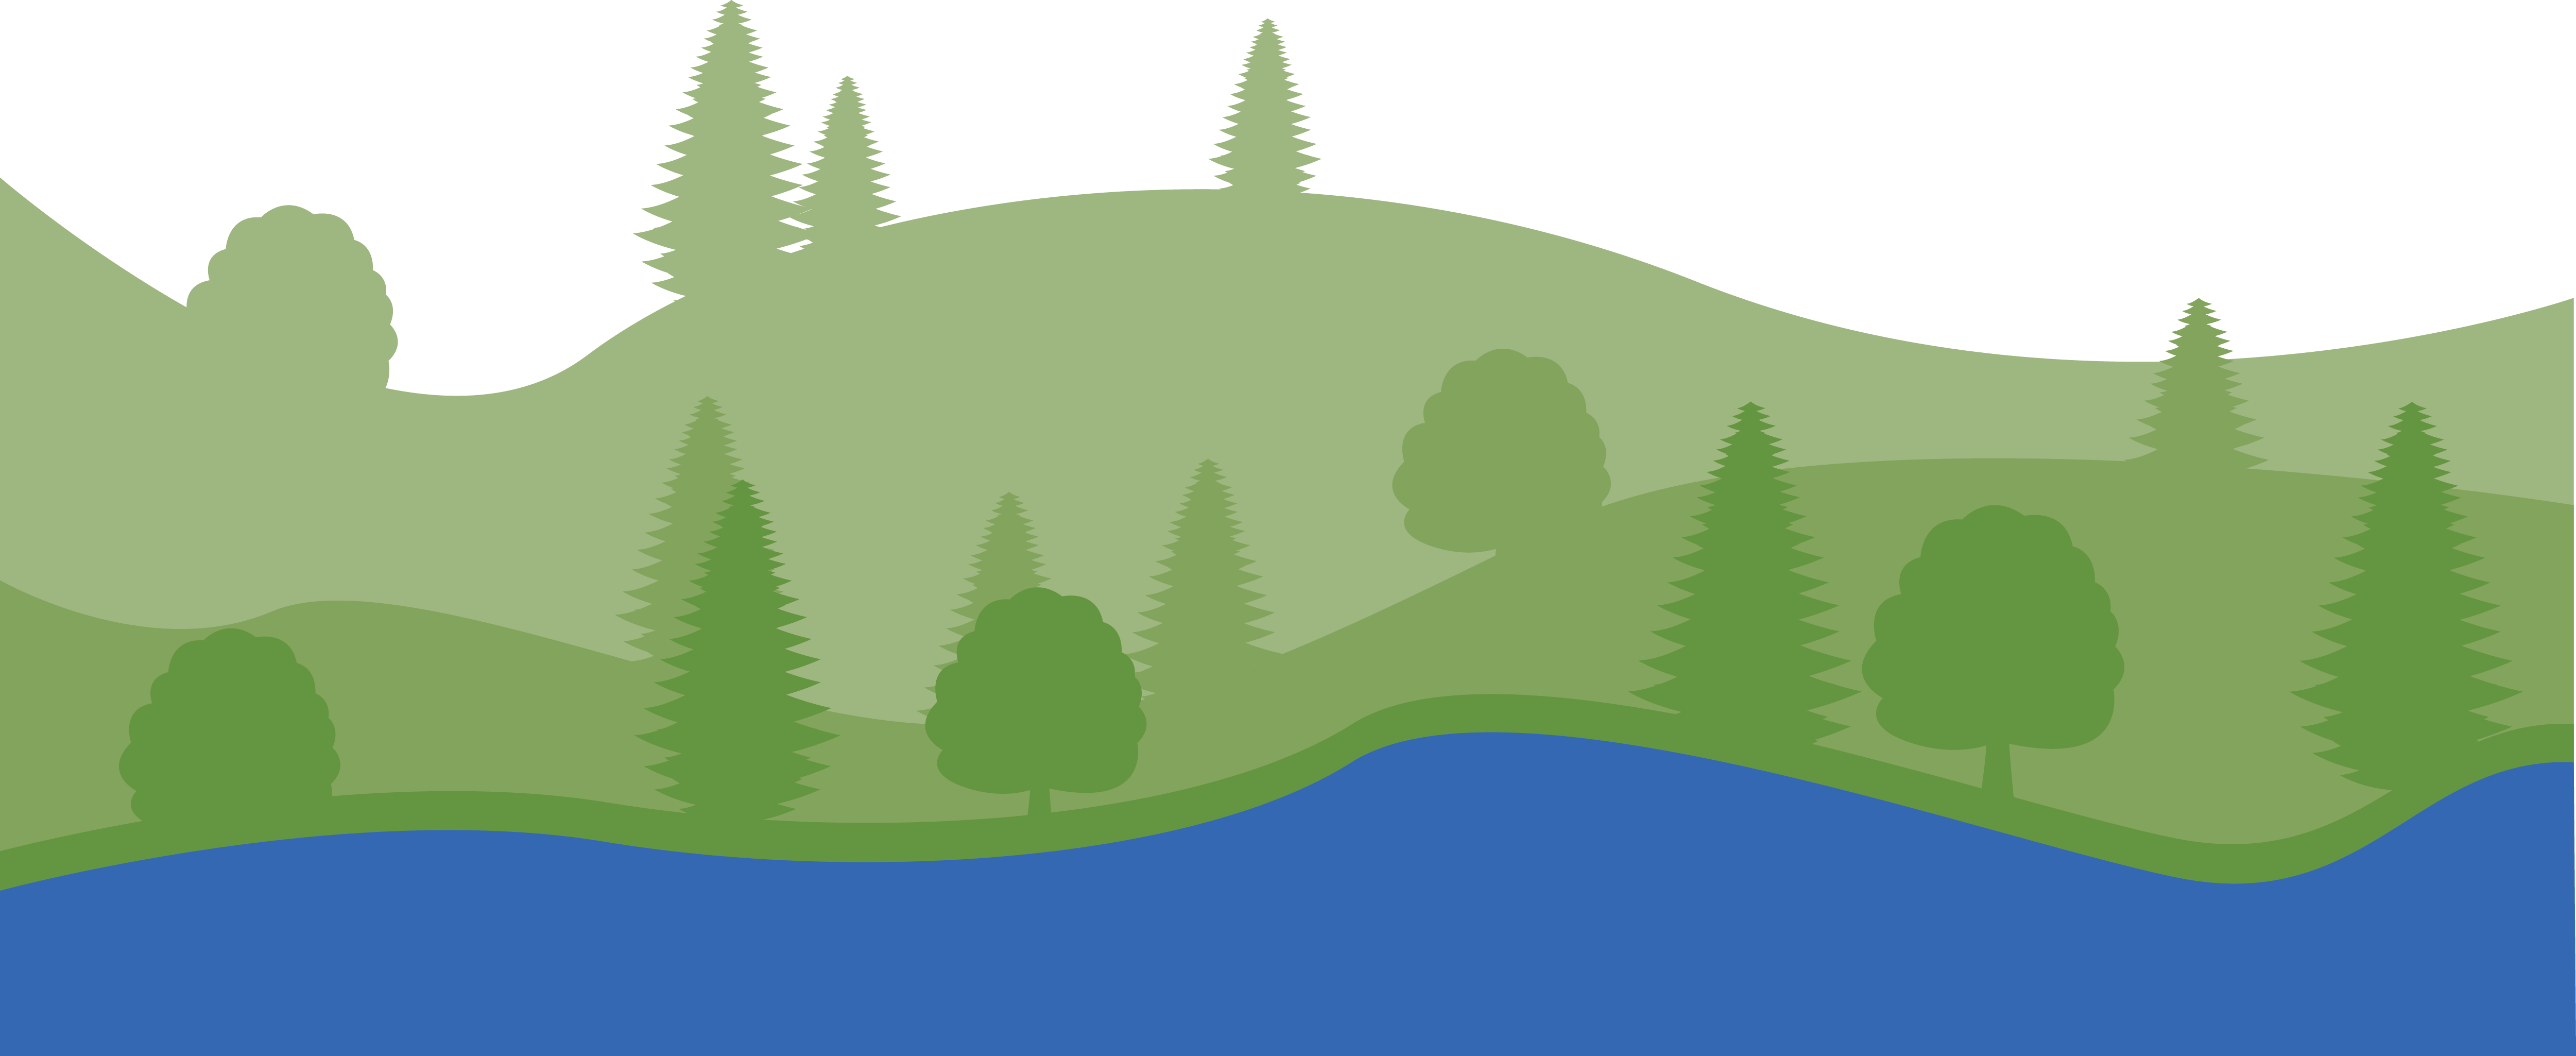 Illustration of mountains and trees